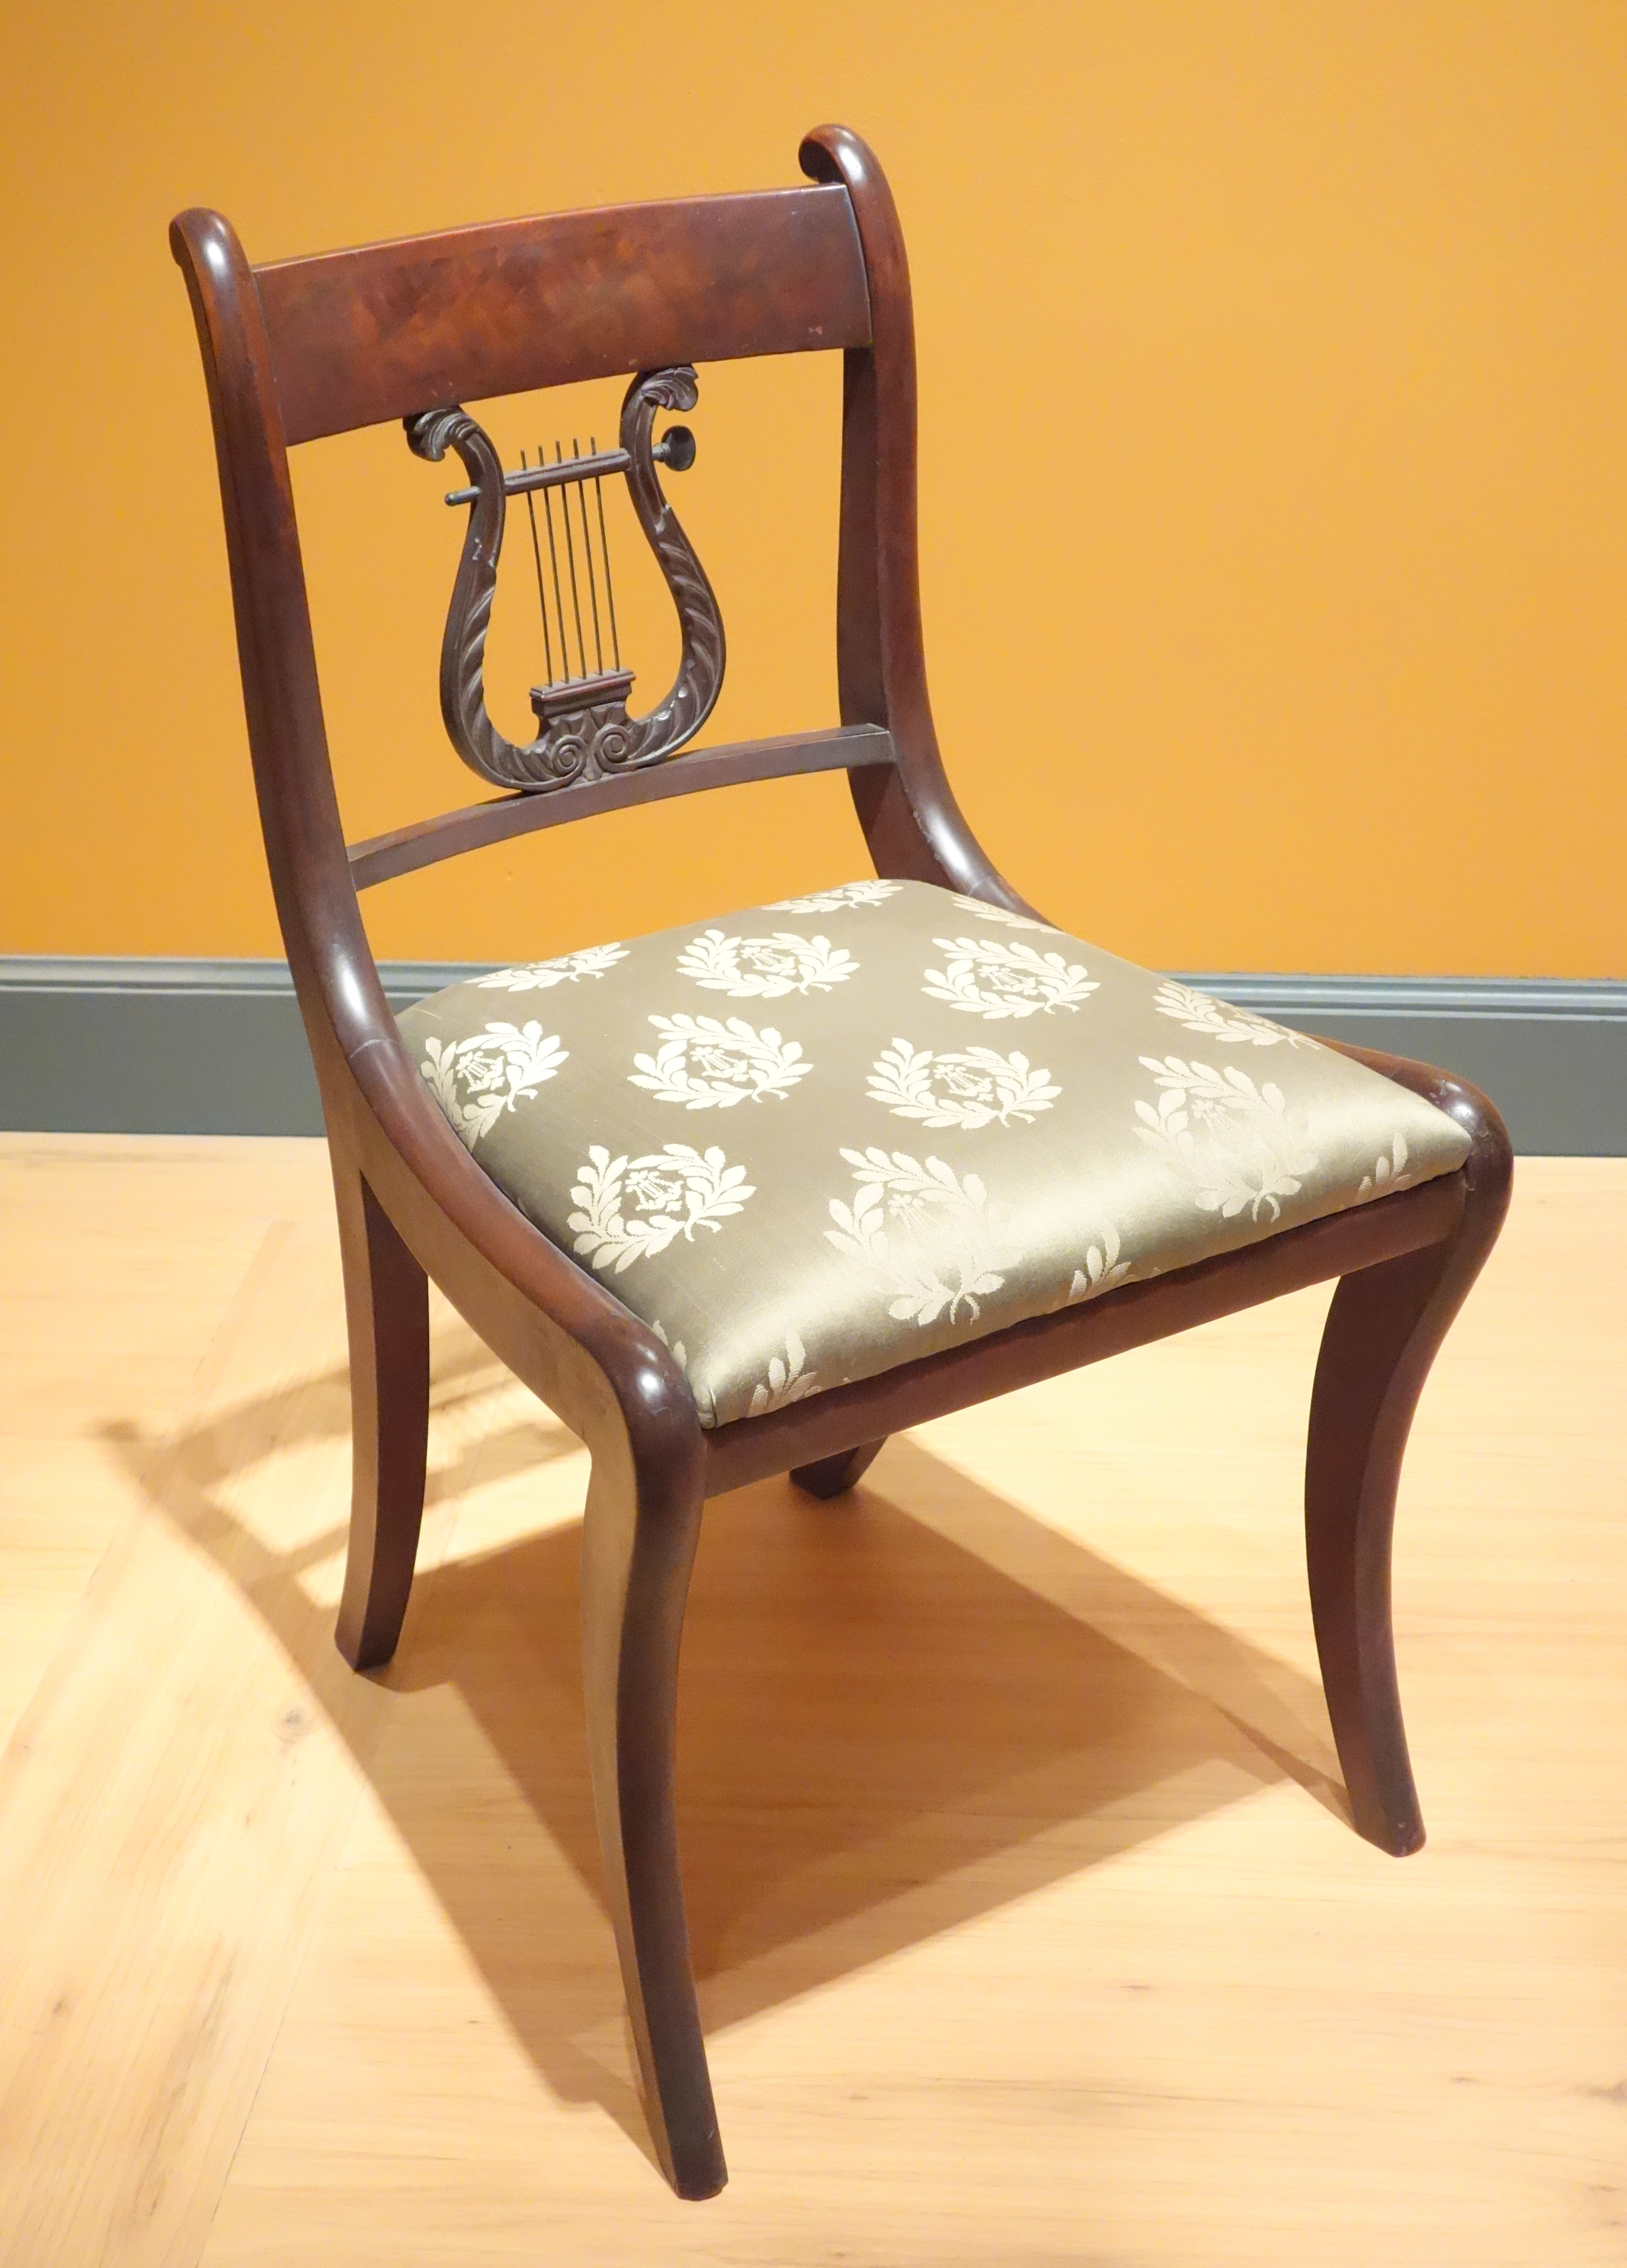 Side Chair Copy Of Duncan Phyfe By Henry Hagen And Frederick New York C 1926 Mahogany Metal Modern Upholstery Brooklyn Museum Dsc09659 Jpg